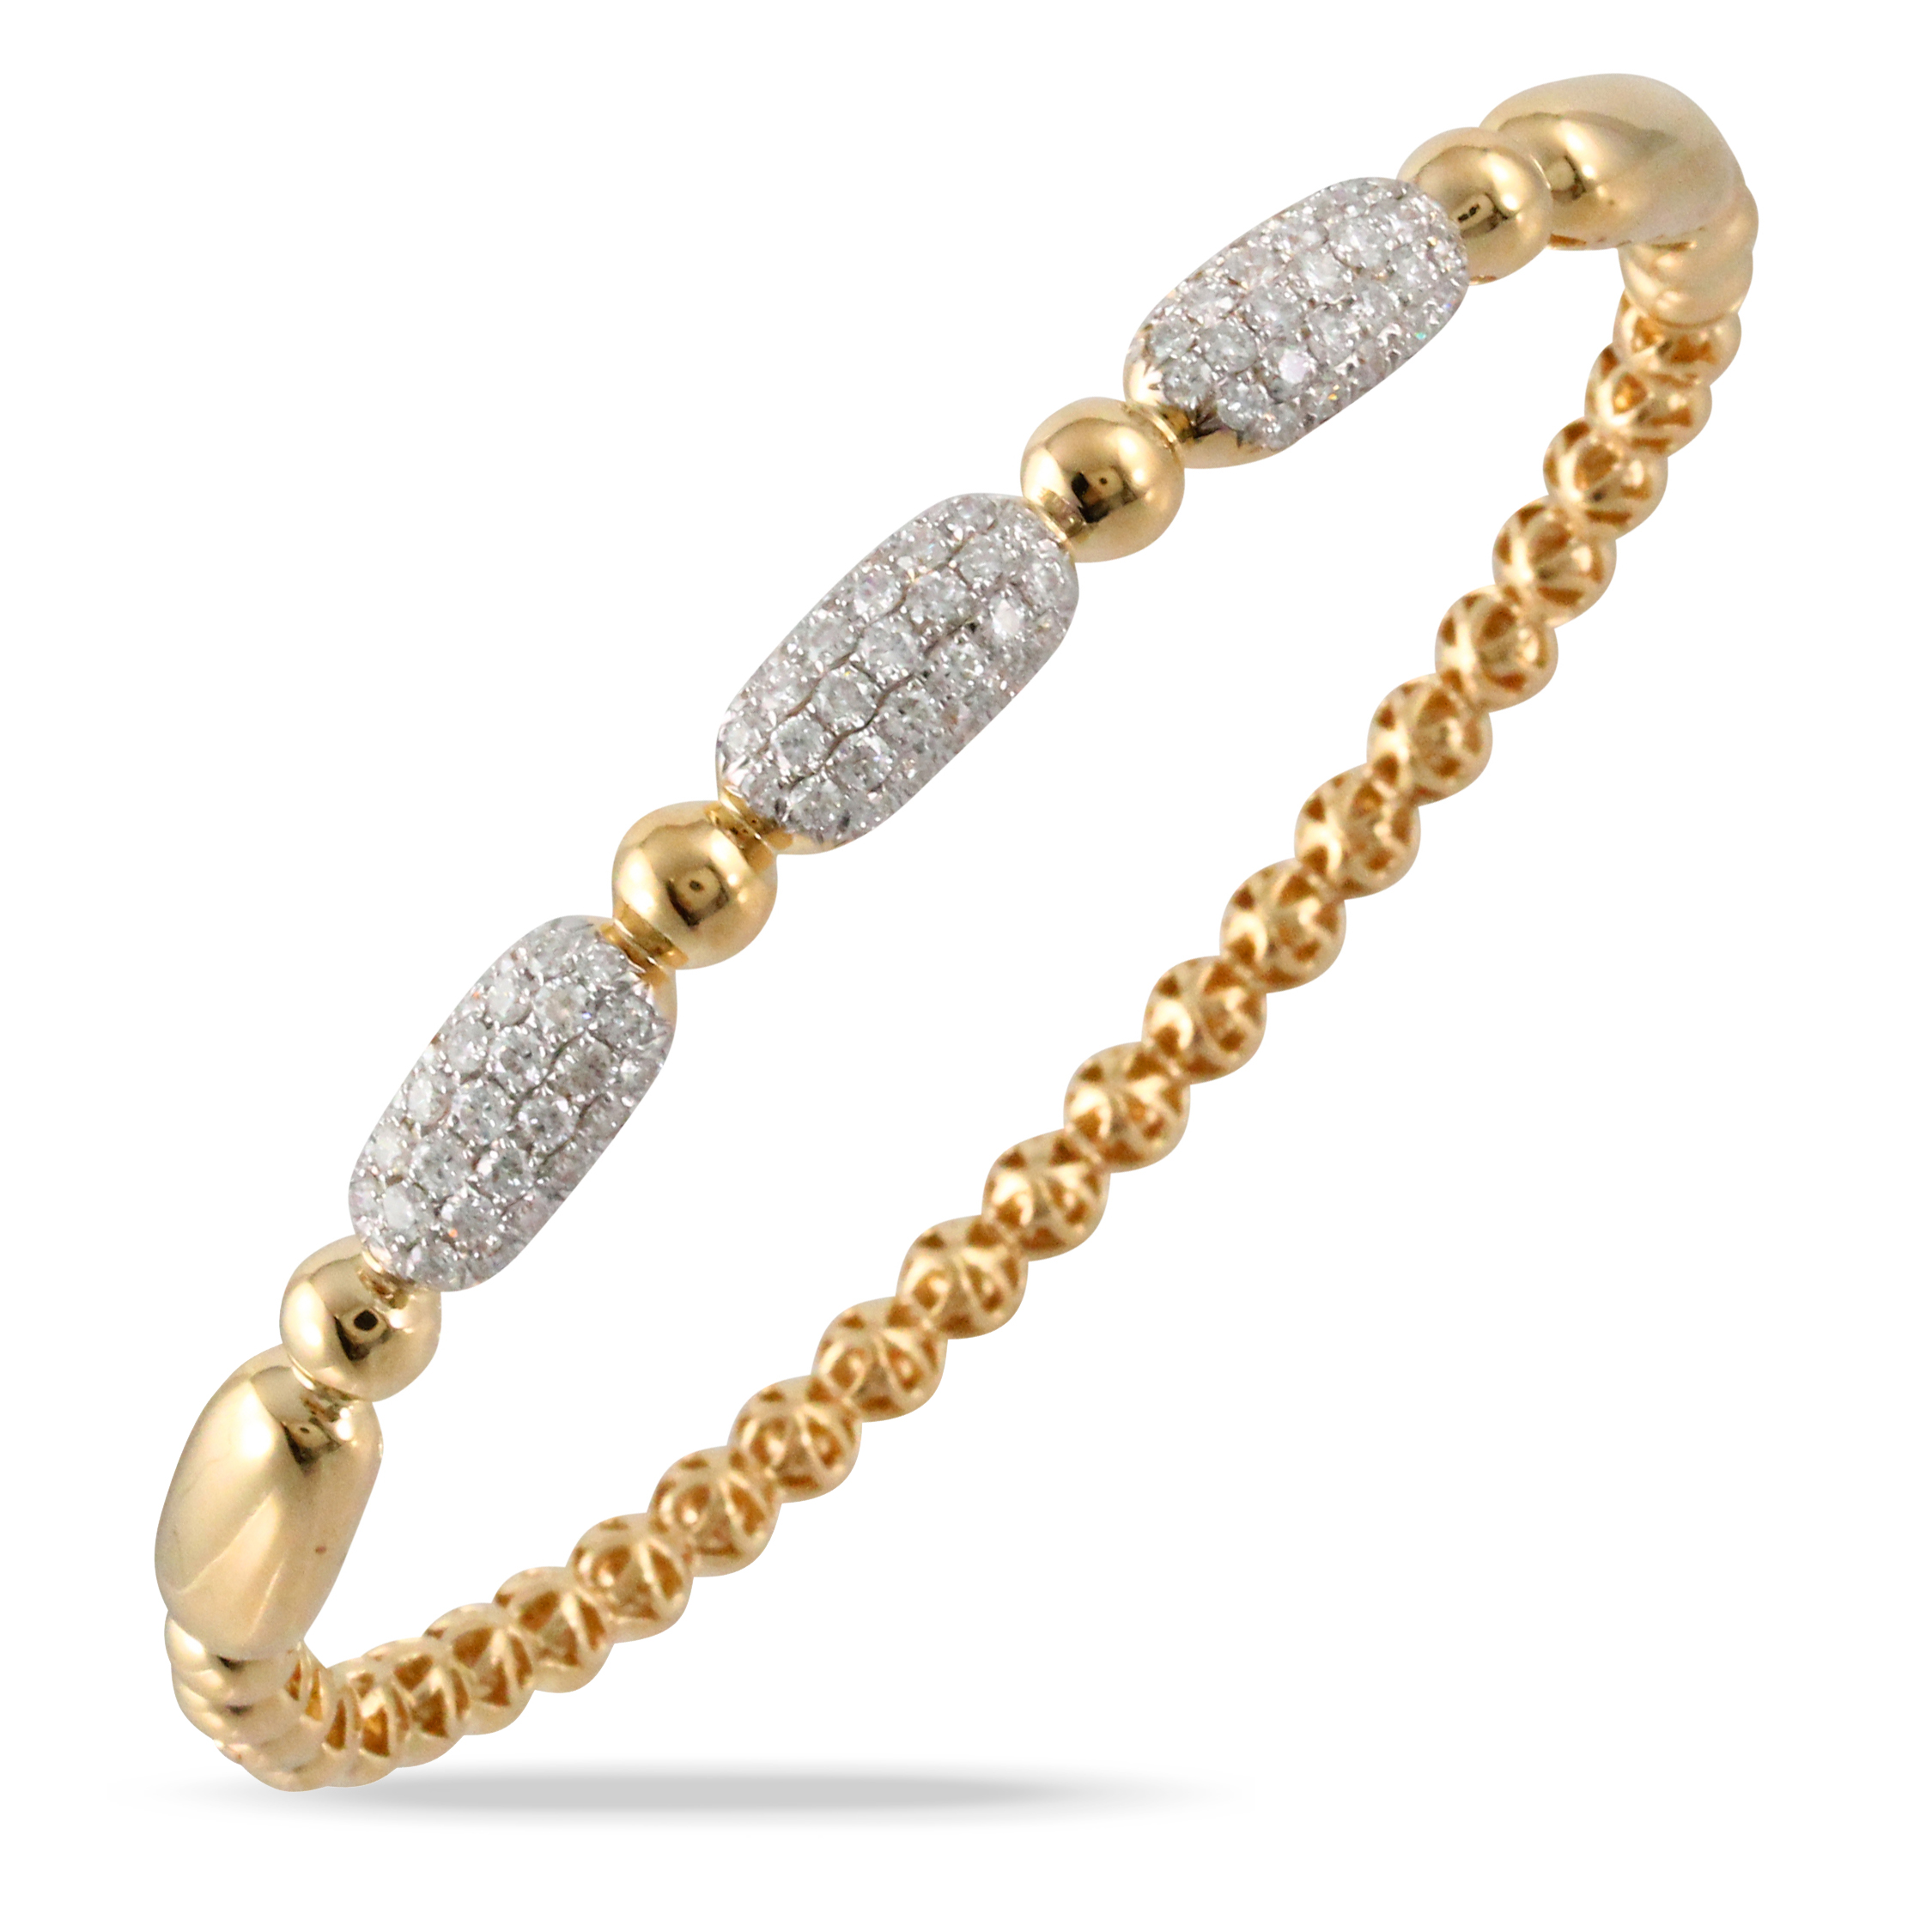 18K White Gold Diamond Bangle Bracelet - 18K Yellow Gold Diamond Bangle